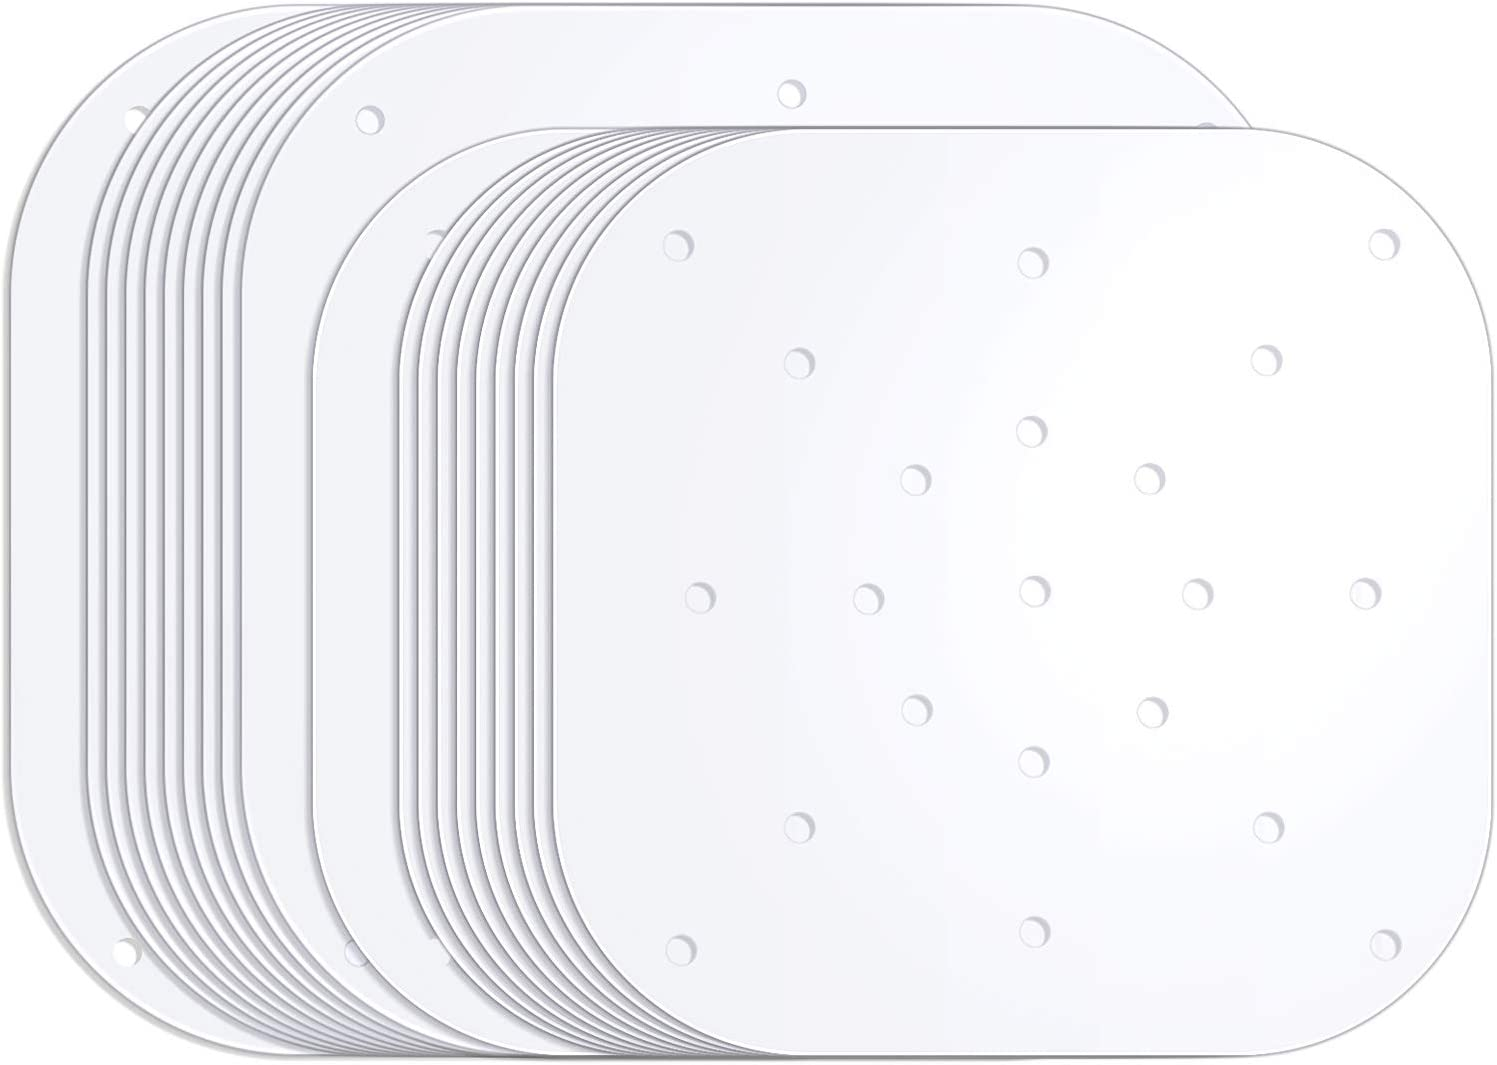 200 Pieces Air Fryer Liners 7.5 Inch 8.5 Inch Air Fryer Parchment Paper Square Steaming Paper Perforated Parchment Paper for Air Fryer Steaming Basket (White)